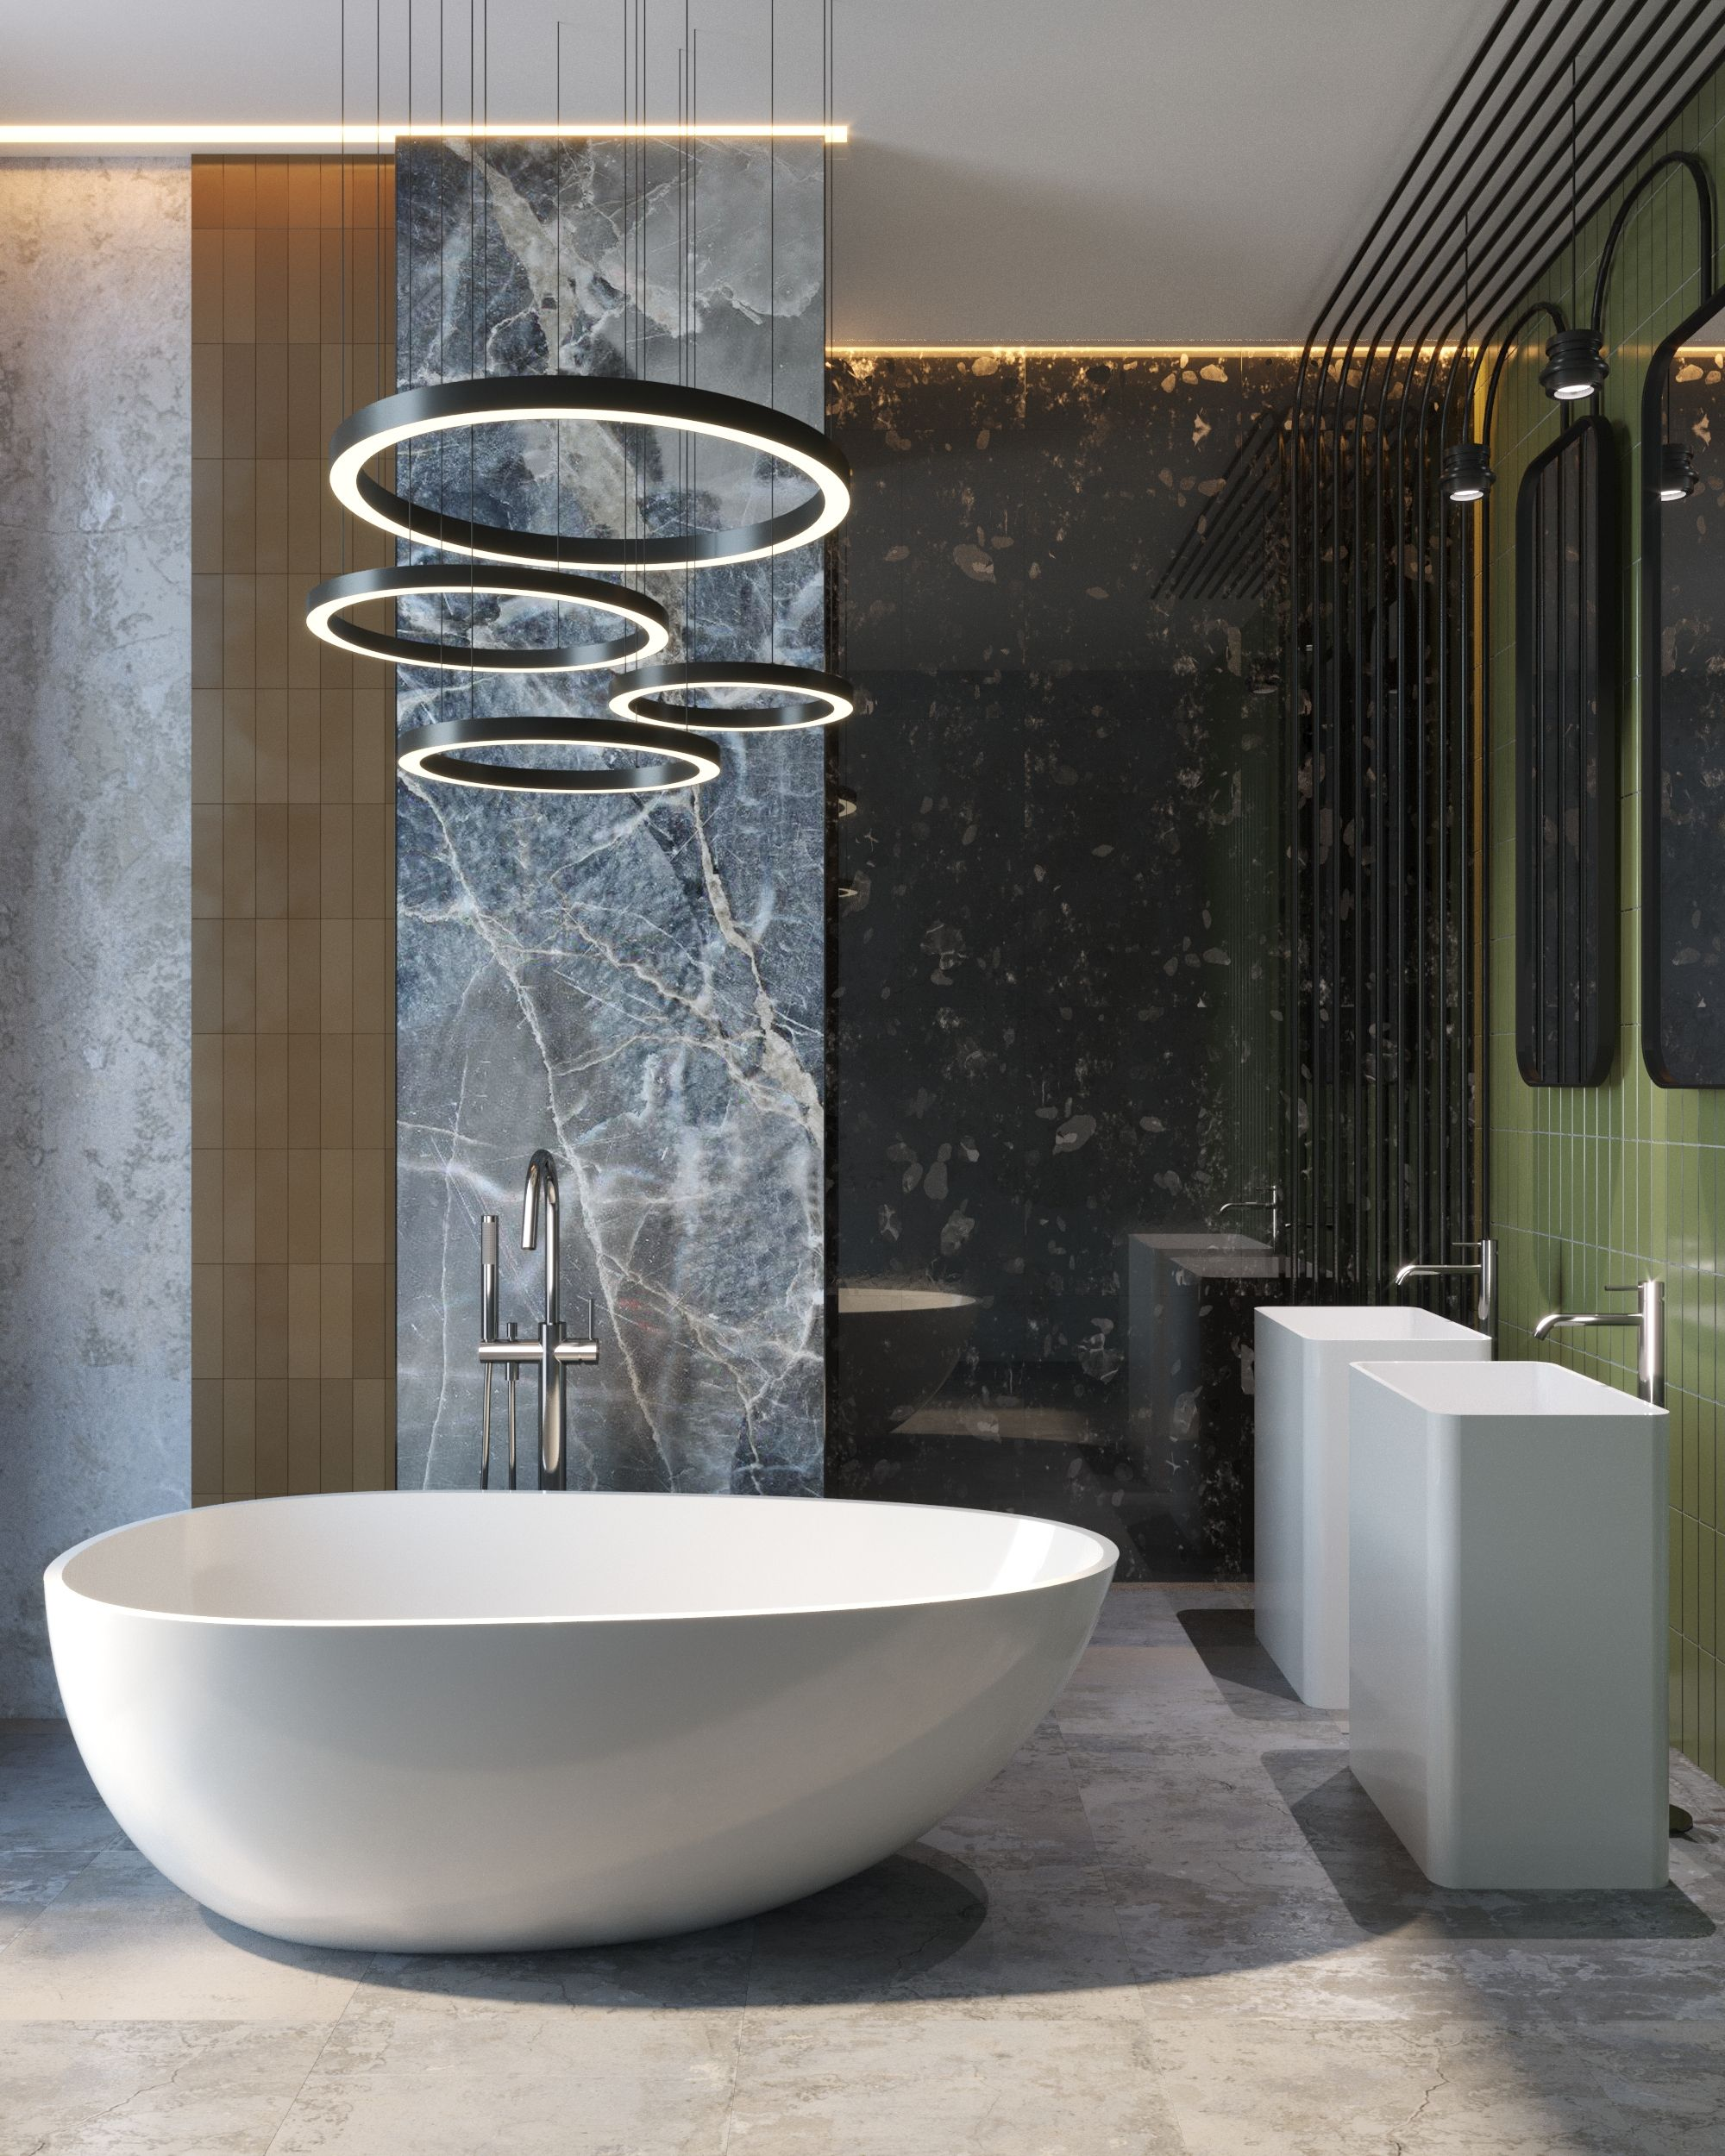 A Unique Modern Look Featuring Smooth Circular Lighting Matching Marble Walls And Freestanding Tub Modern Toilet Toilet Design Modern Simple Bathroom